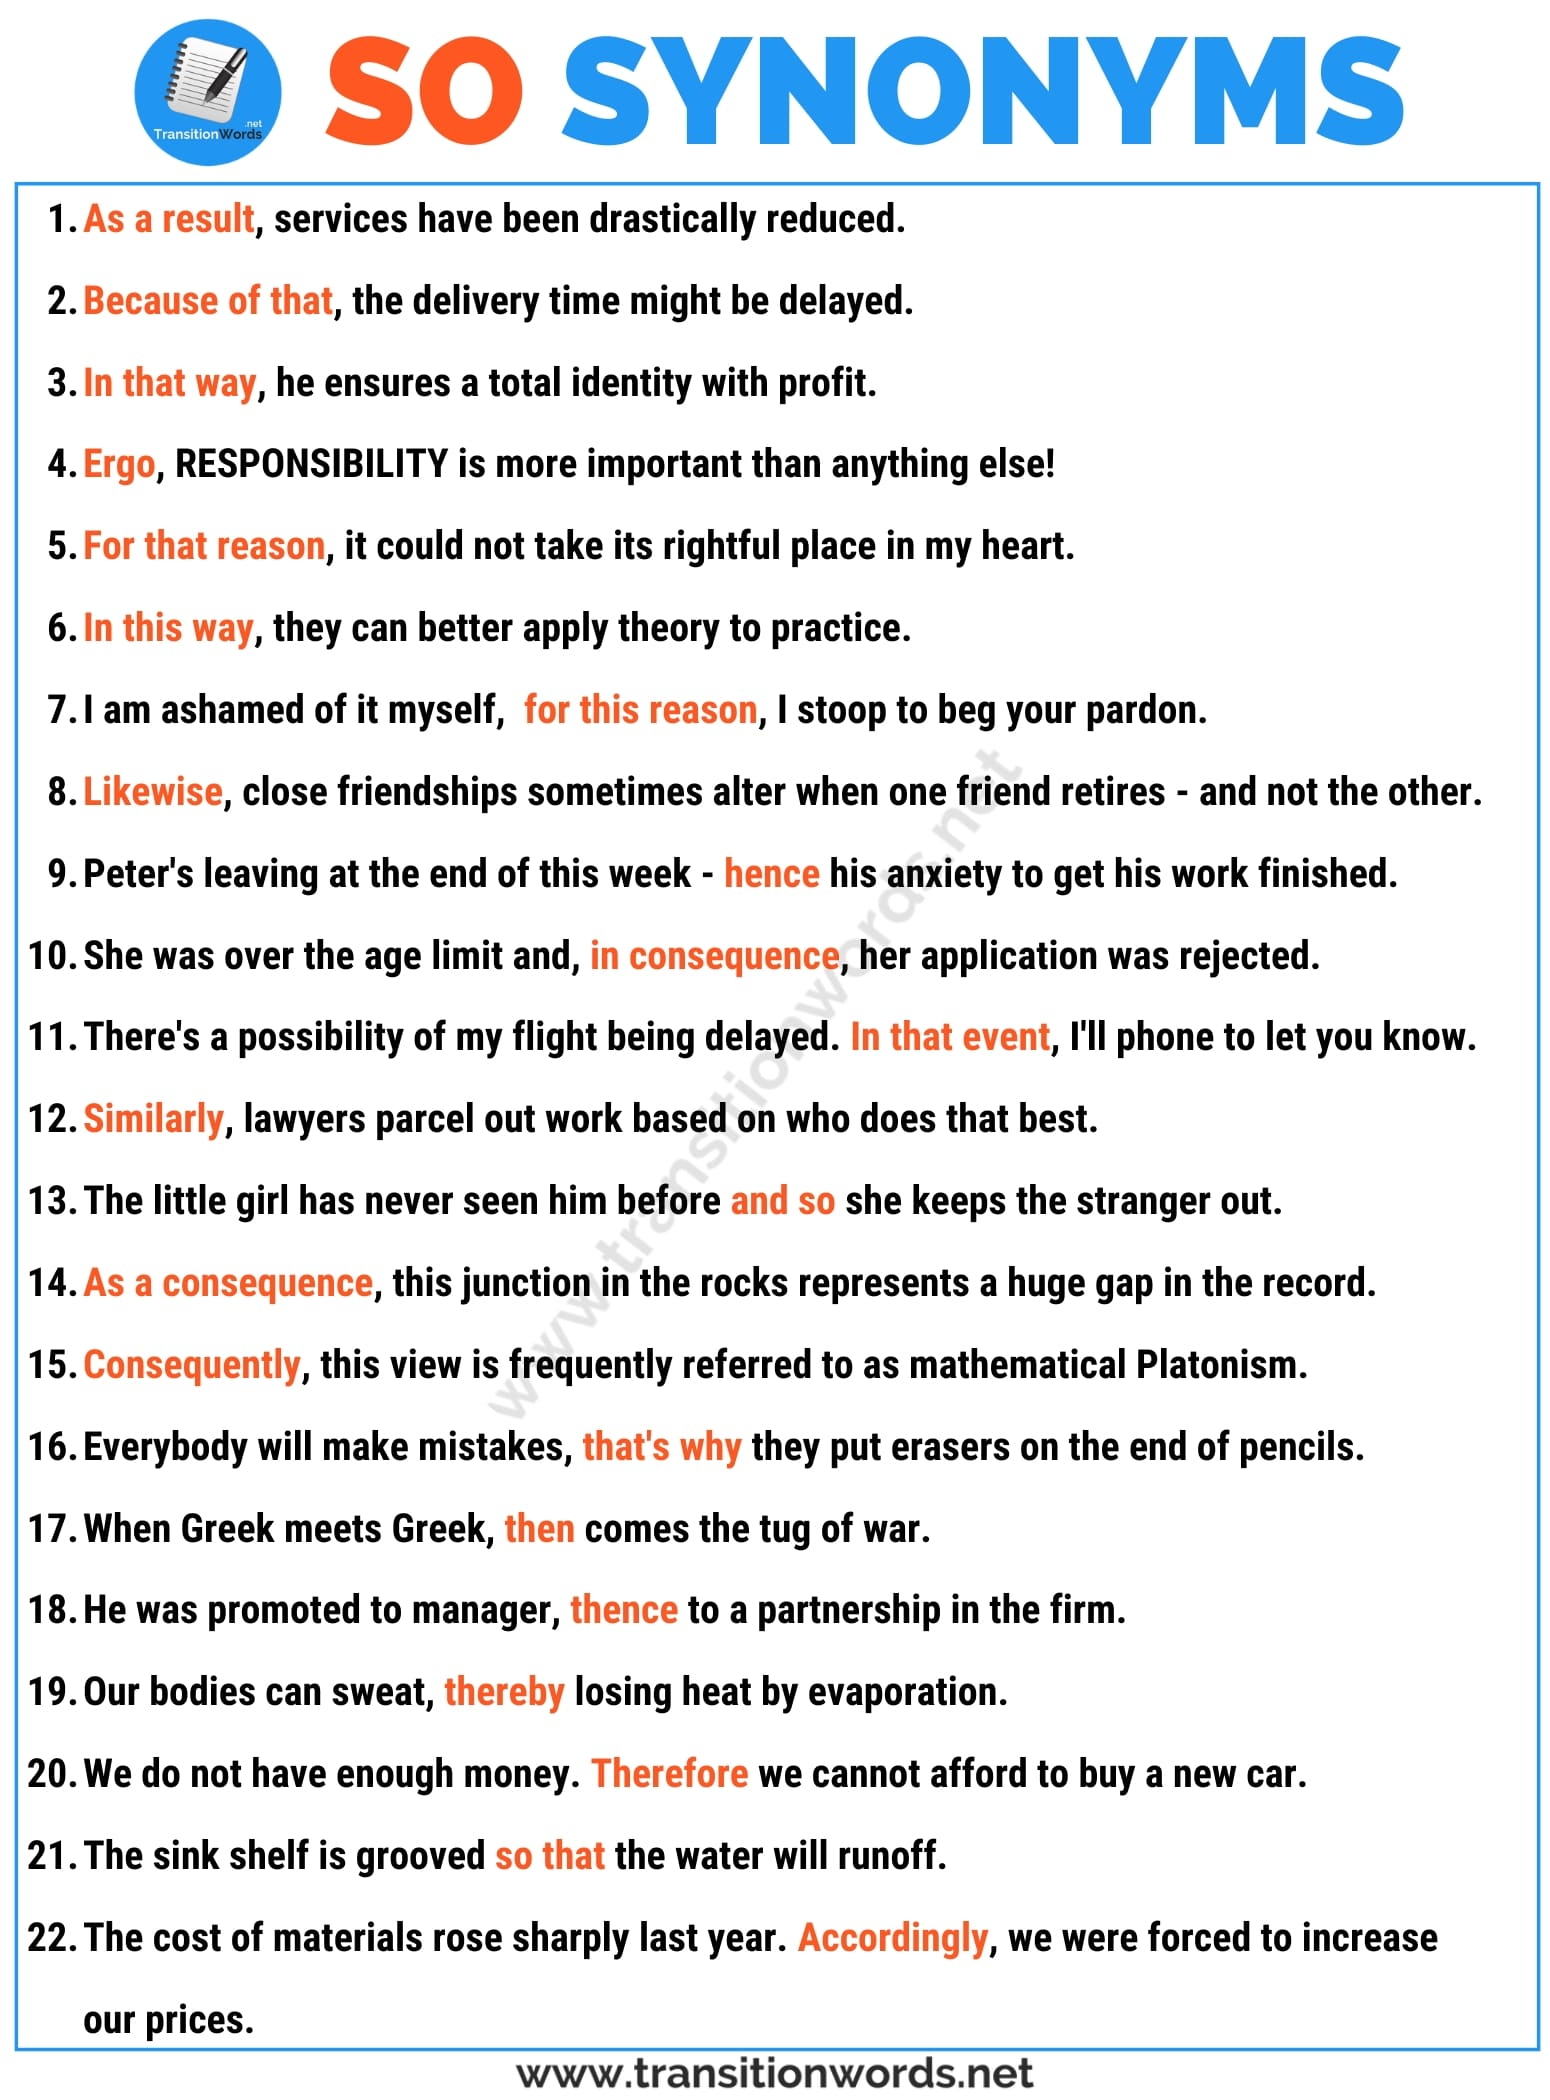 Other Ways to Say SO: List of 20+ Synonyms for SO in English with Useful Examples